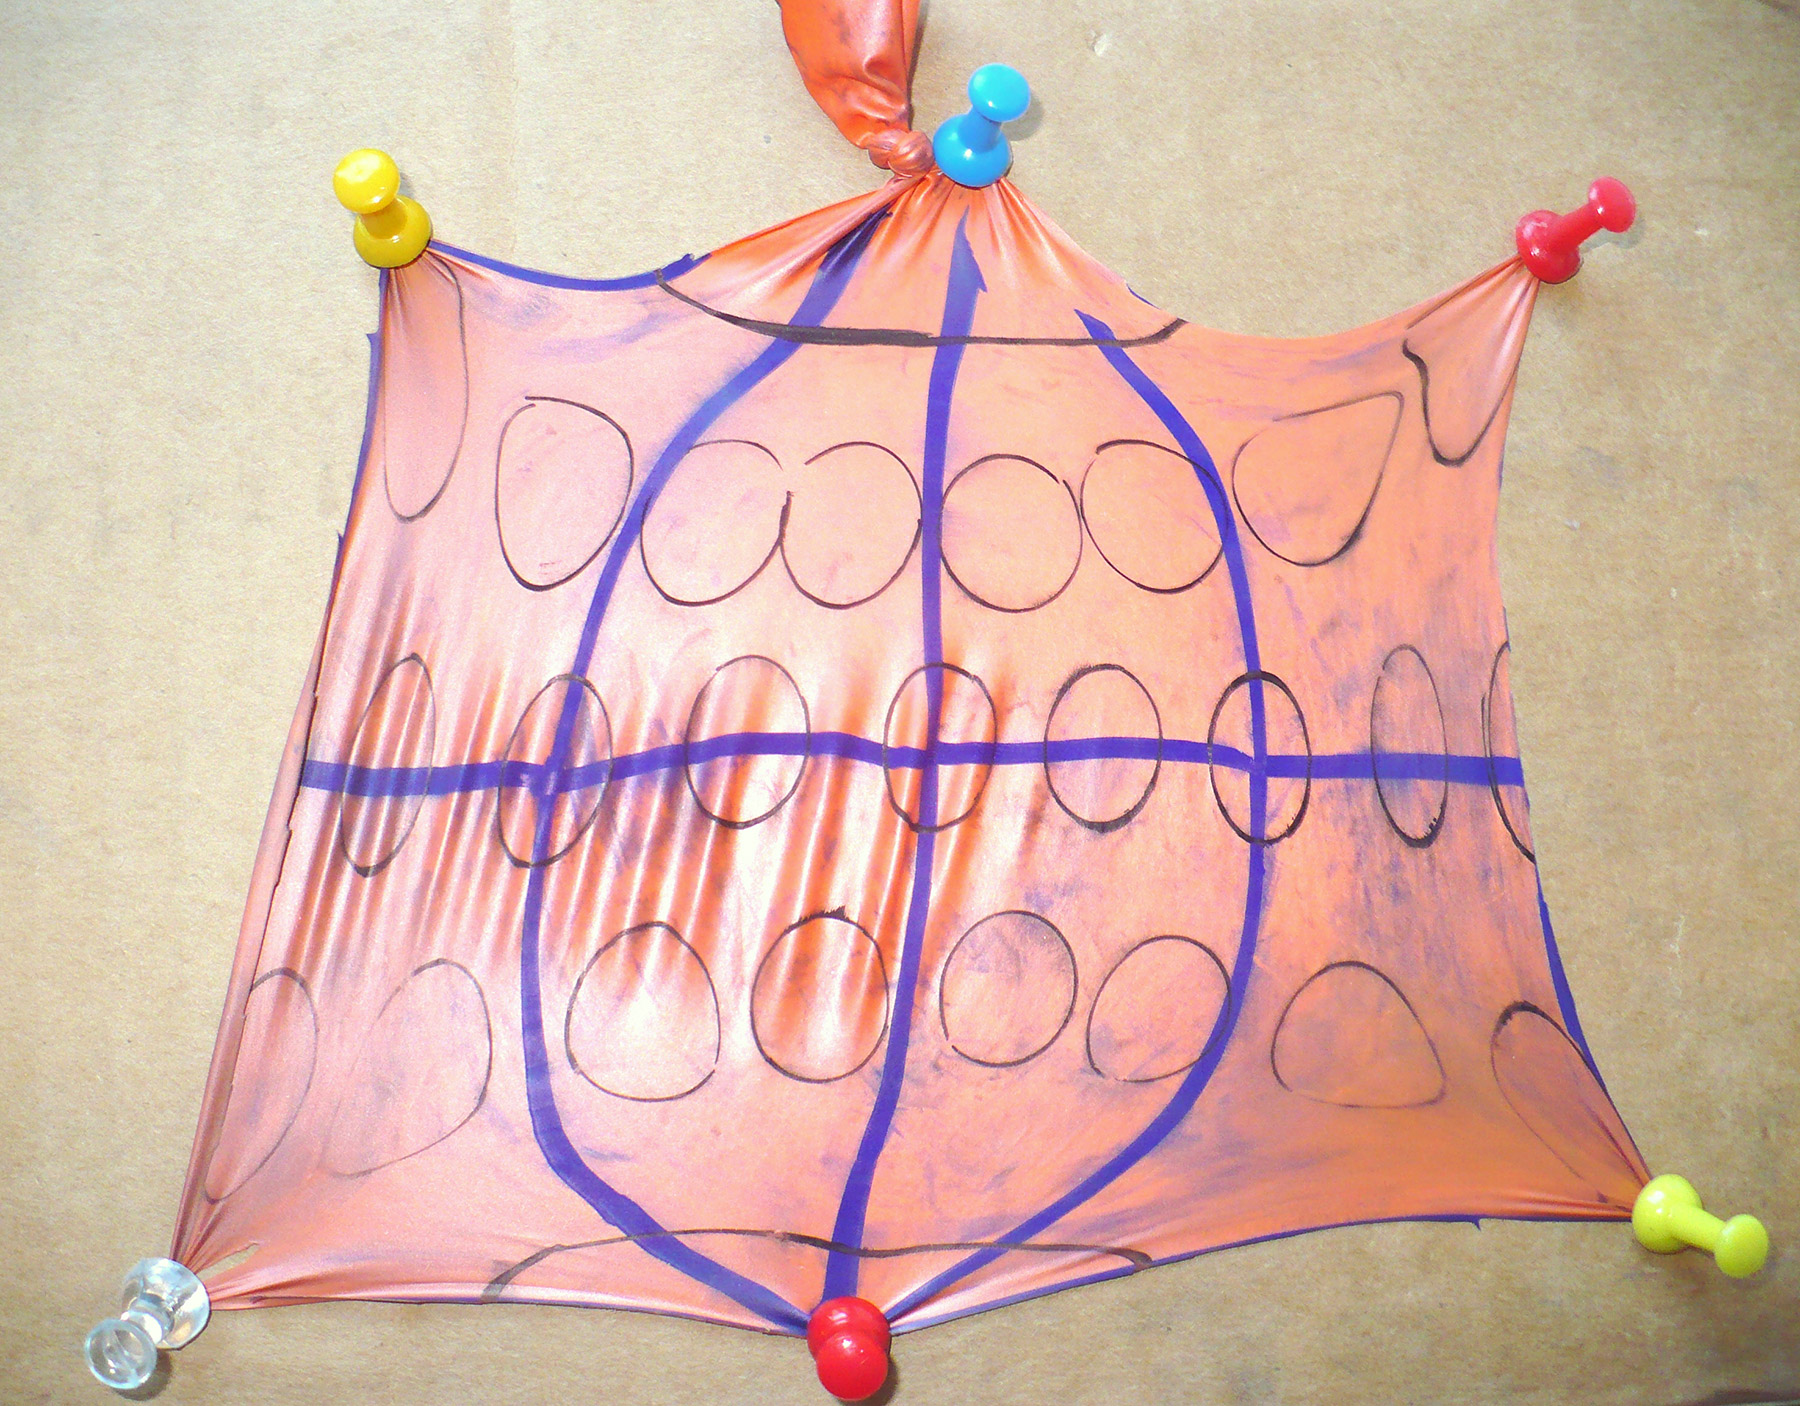 Projection created by stretching out a cut open deflated balloon to a rectangular flat map.